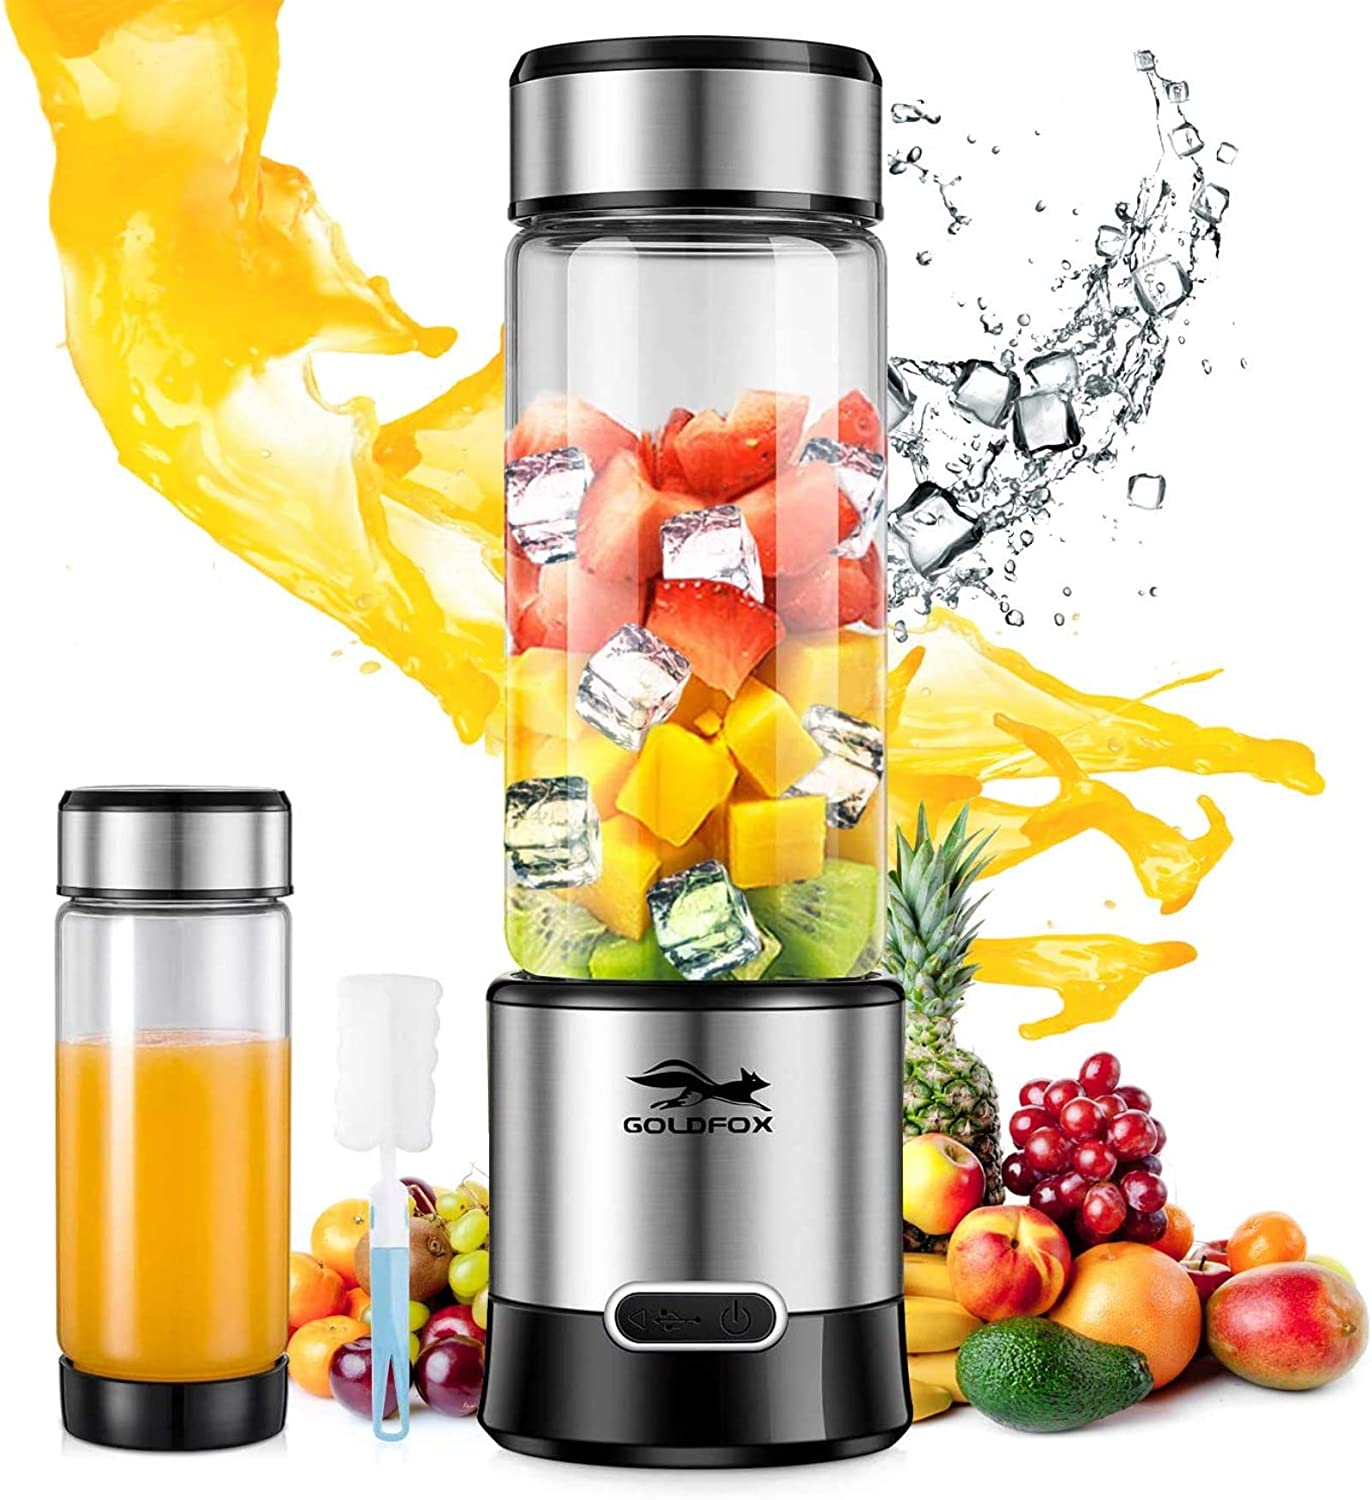 Portable Blender, GOLDFOX USB Rechargeable Personal Blender for Shakes and Smoothies, 15oz Detachable Portable Juicer Cup Small Fruit Juice Mixer for Travel, Gym, Office etc. (with Brush)